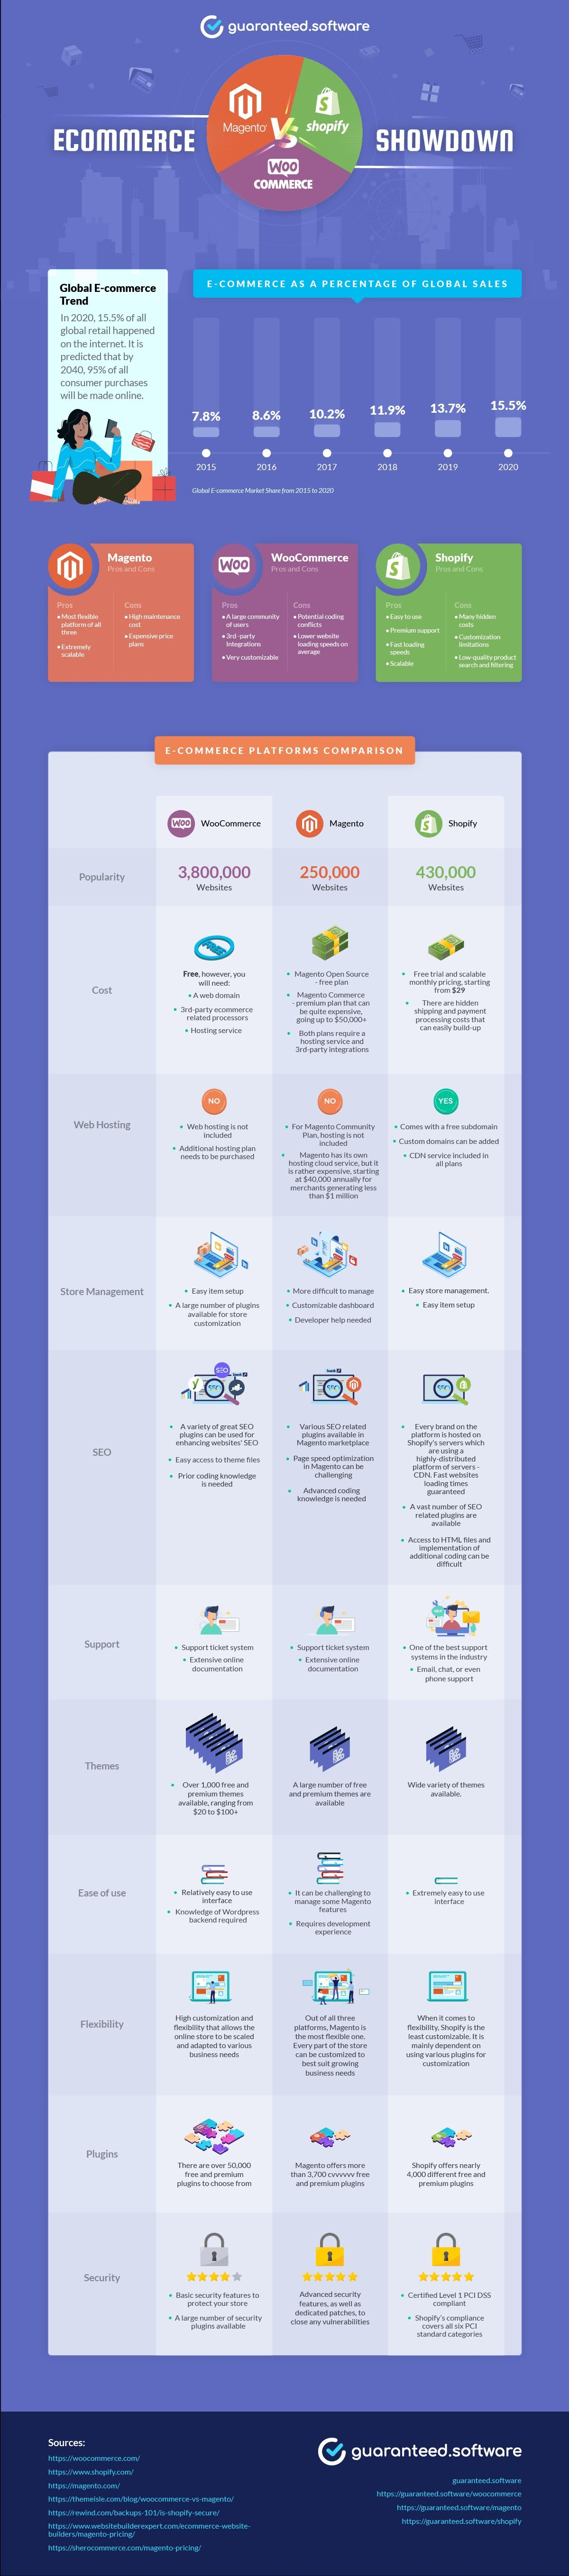 woocommerce-vs-magento-vs-shopify-three-best-online-ecommerce-solutions-explained-infographic